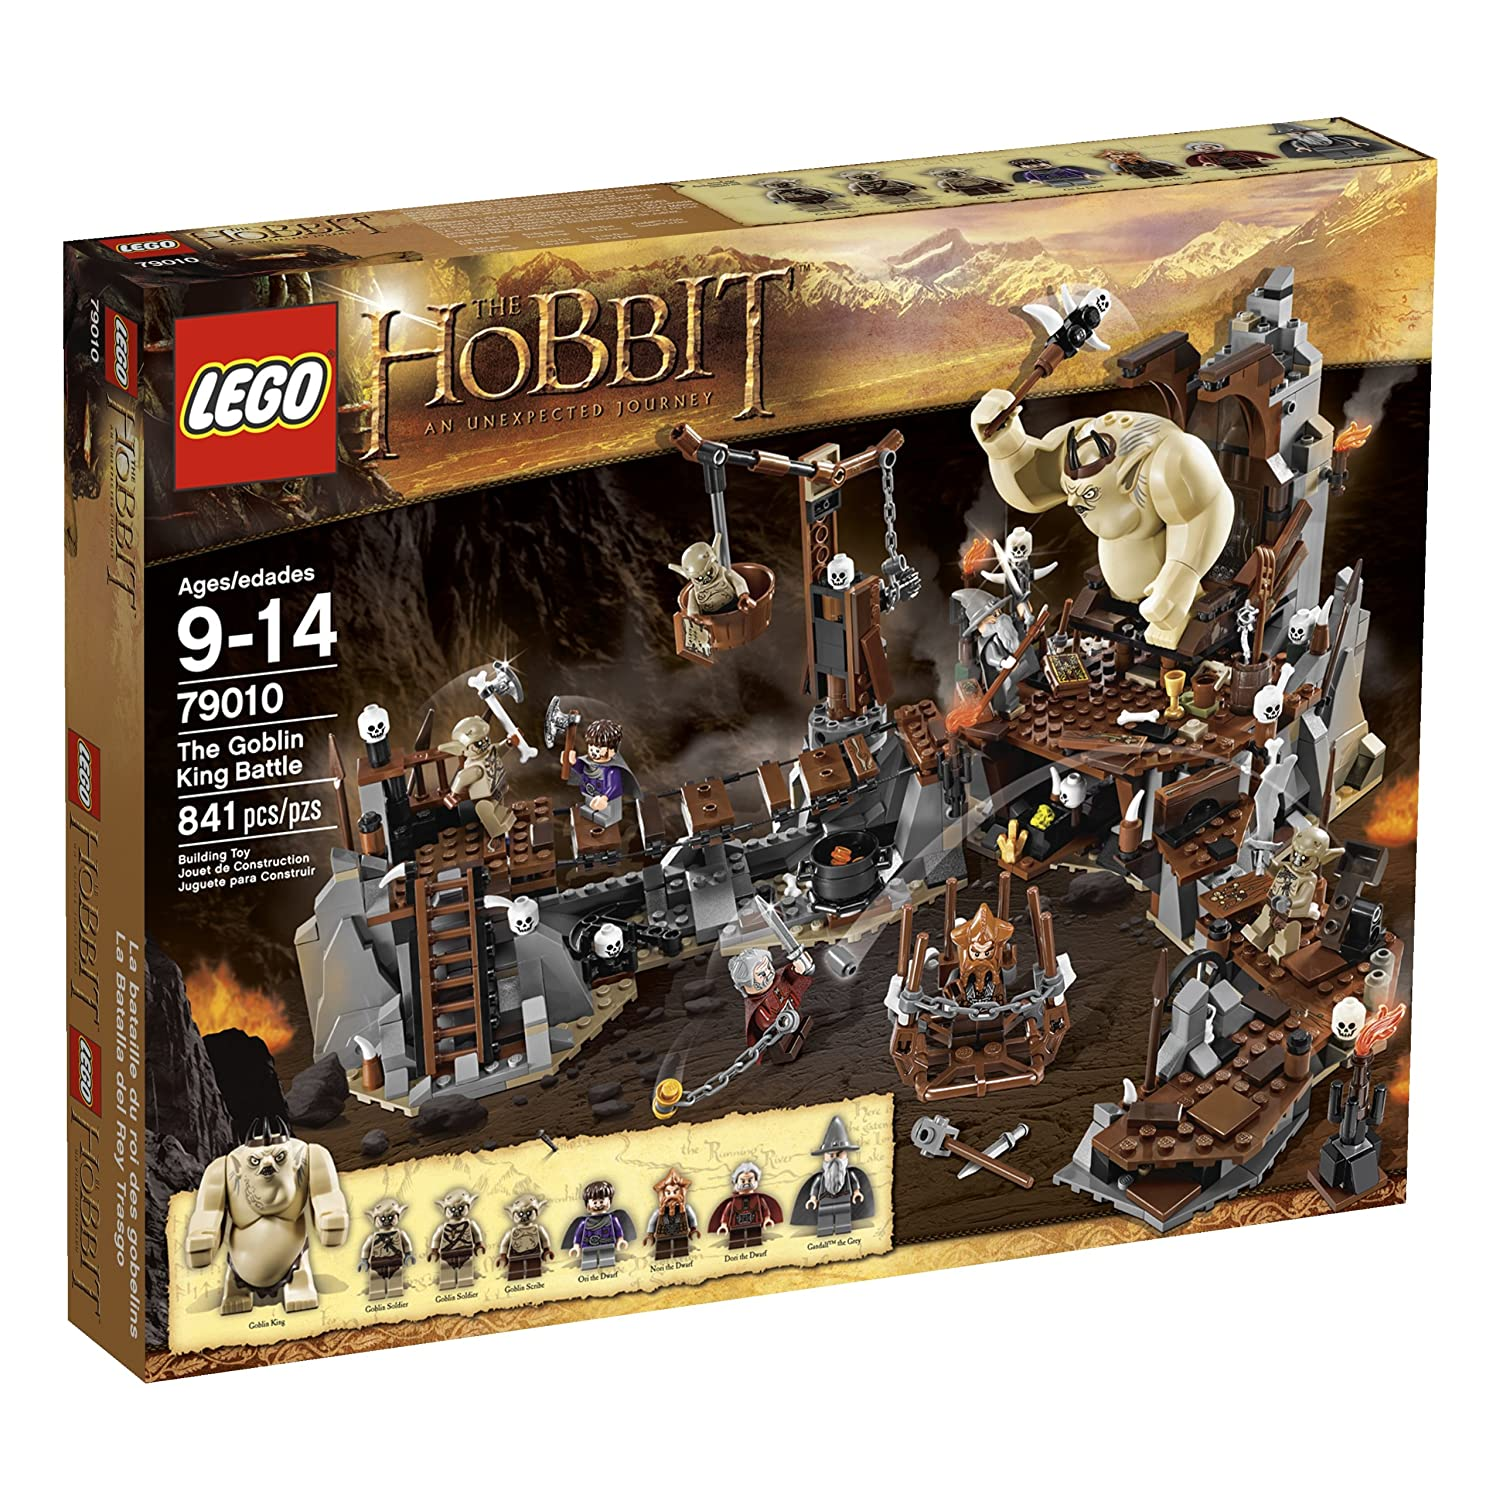 LEGO The Hobbit The Goblin King Battle Includes 7 minifigures: Dori the Dwarf, Nori the Dwarf, Ori the Dwarf, Gandalf the Grey, The Goblin King, Goblin Scribe and 2 Goblin Soldiers, all with assorted weapons Accessories include map, skulls, bone elements, torches with flame elements, golden crystals and The Goblin King's crown and bone scepter toy kids age 9 and over